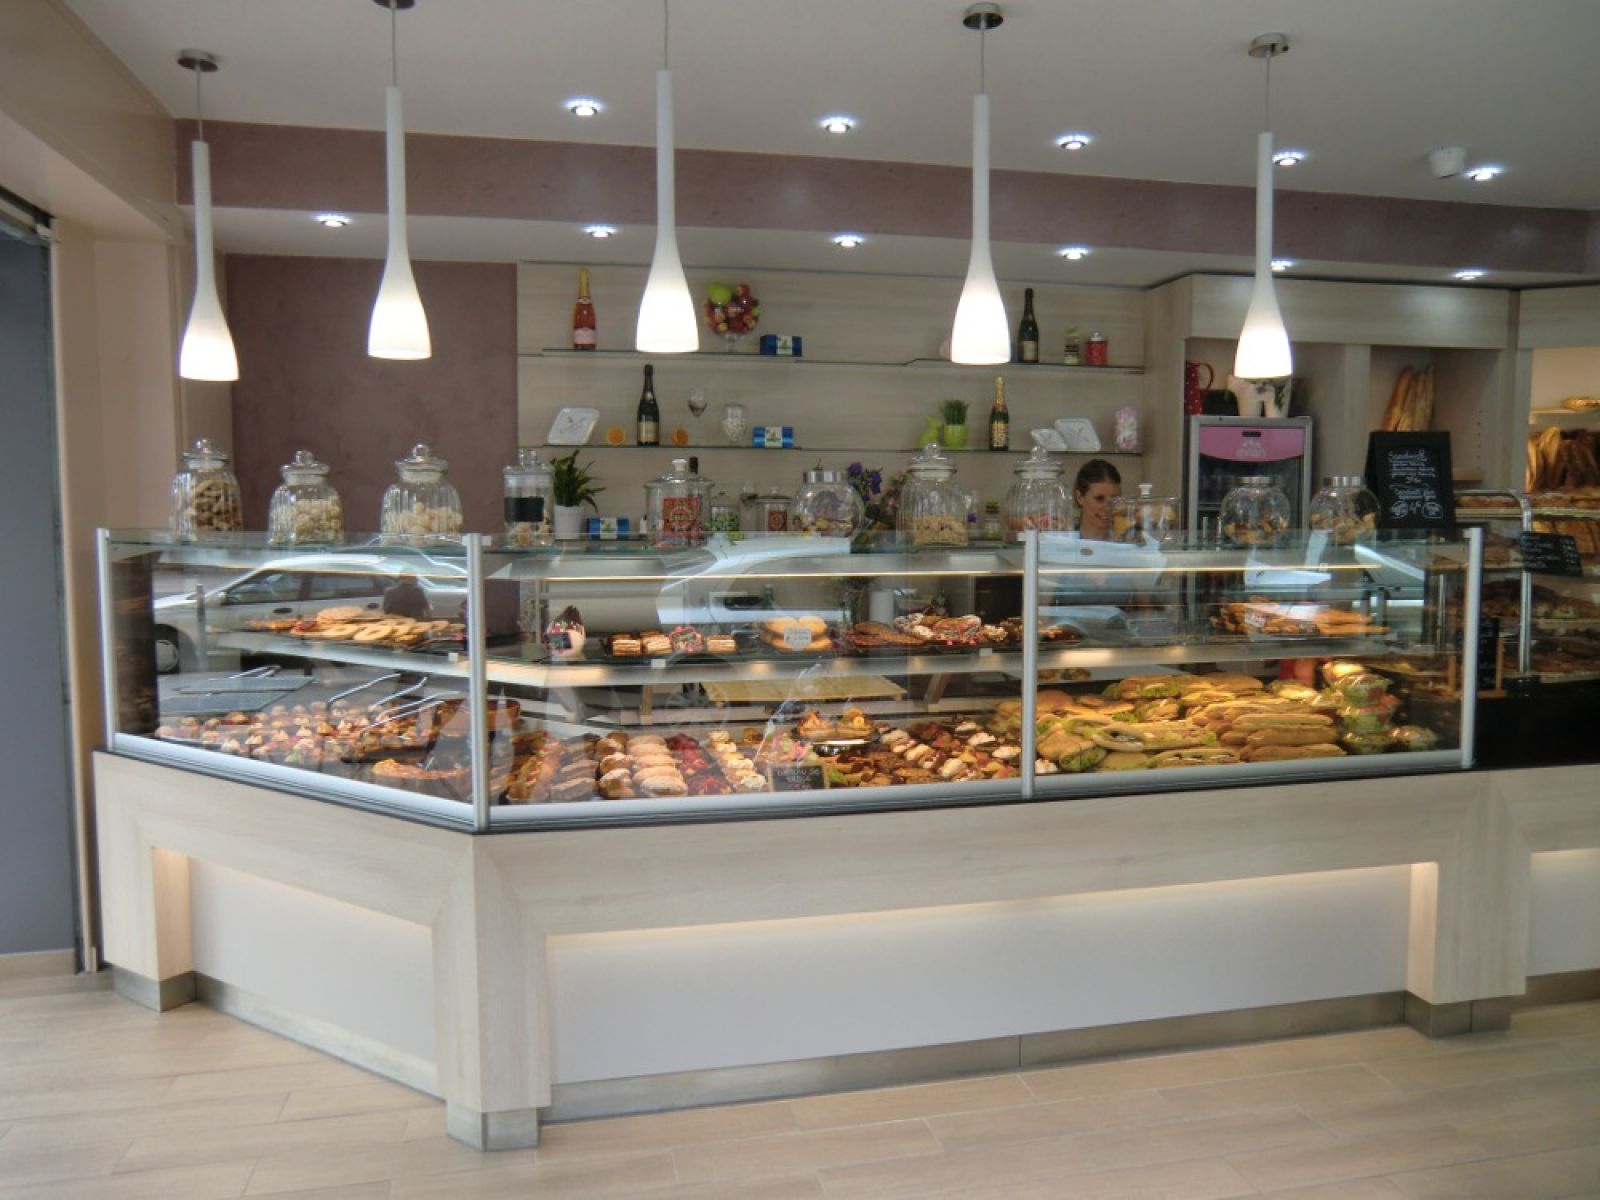 rnovation interieur boulangerie rnovation extrieur boulangerie